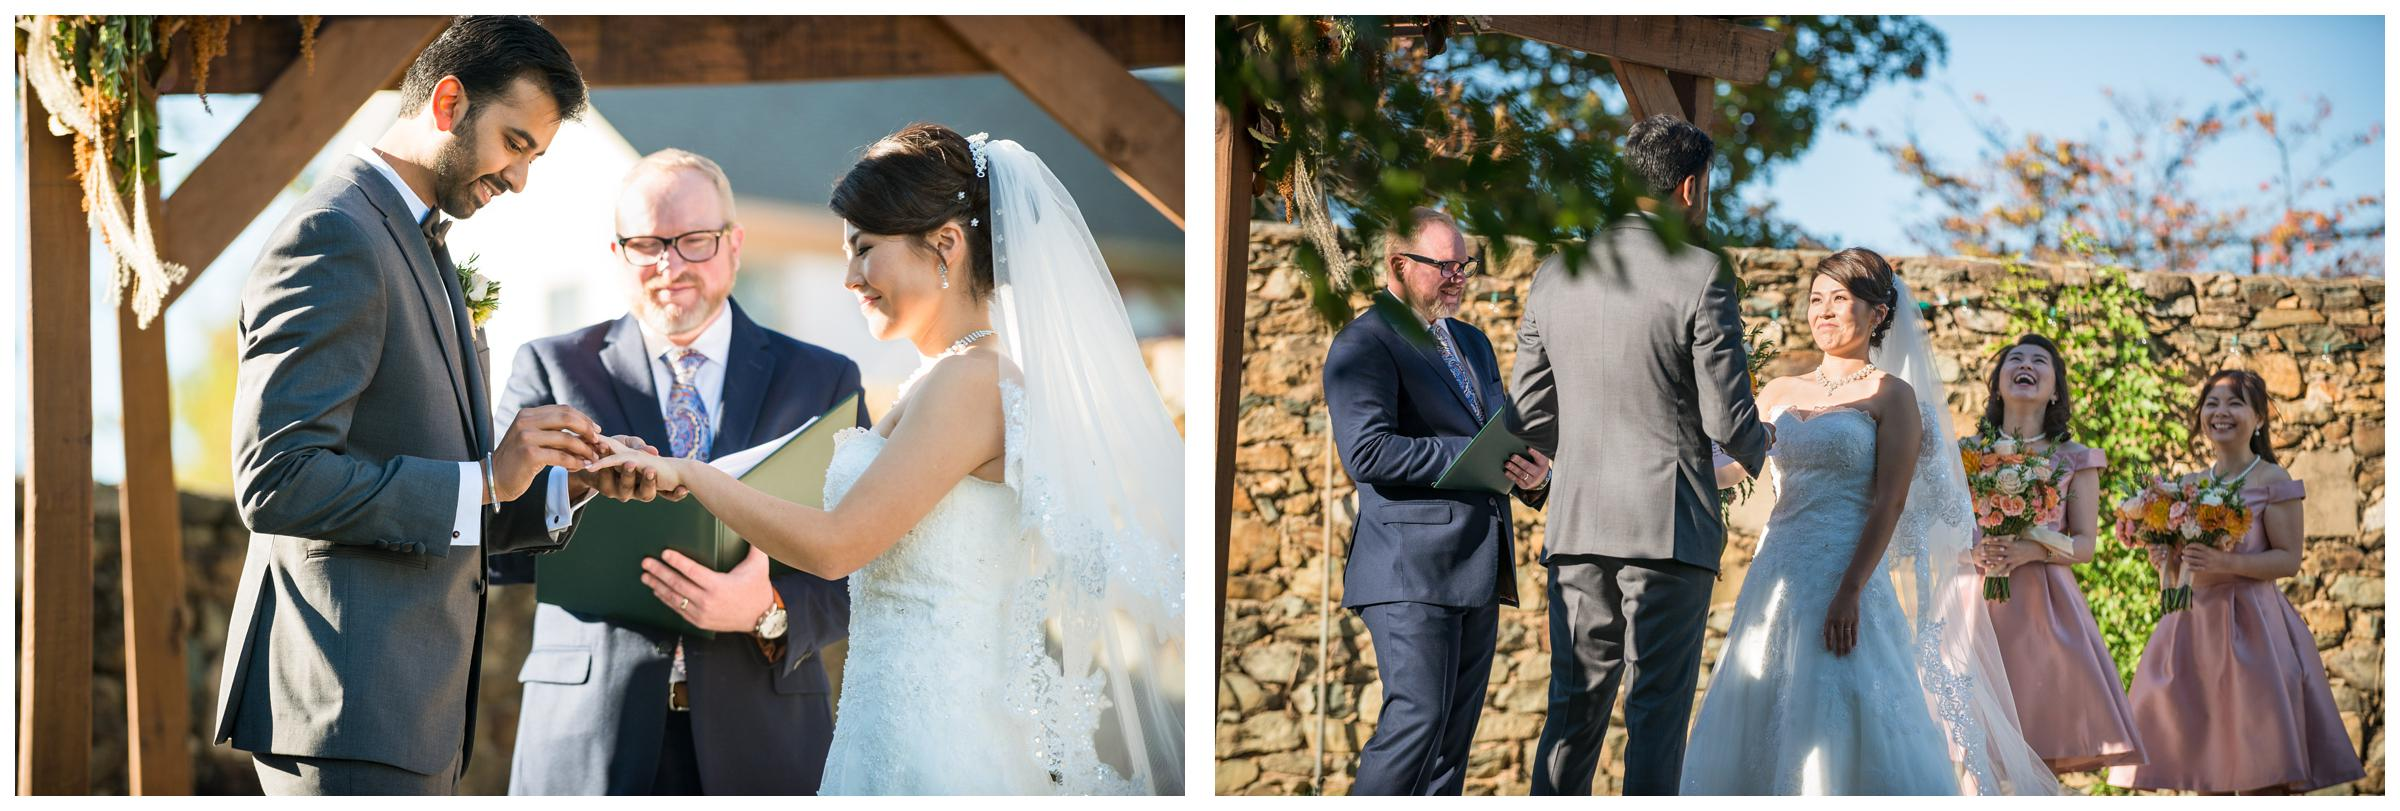 Bride laughing and couple exchanging rings during rustic wedding ceremony in Virginia.